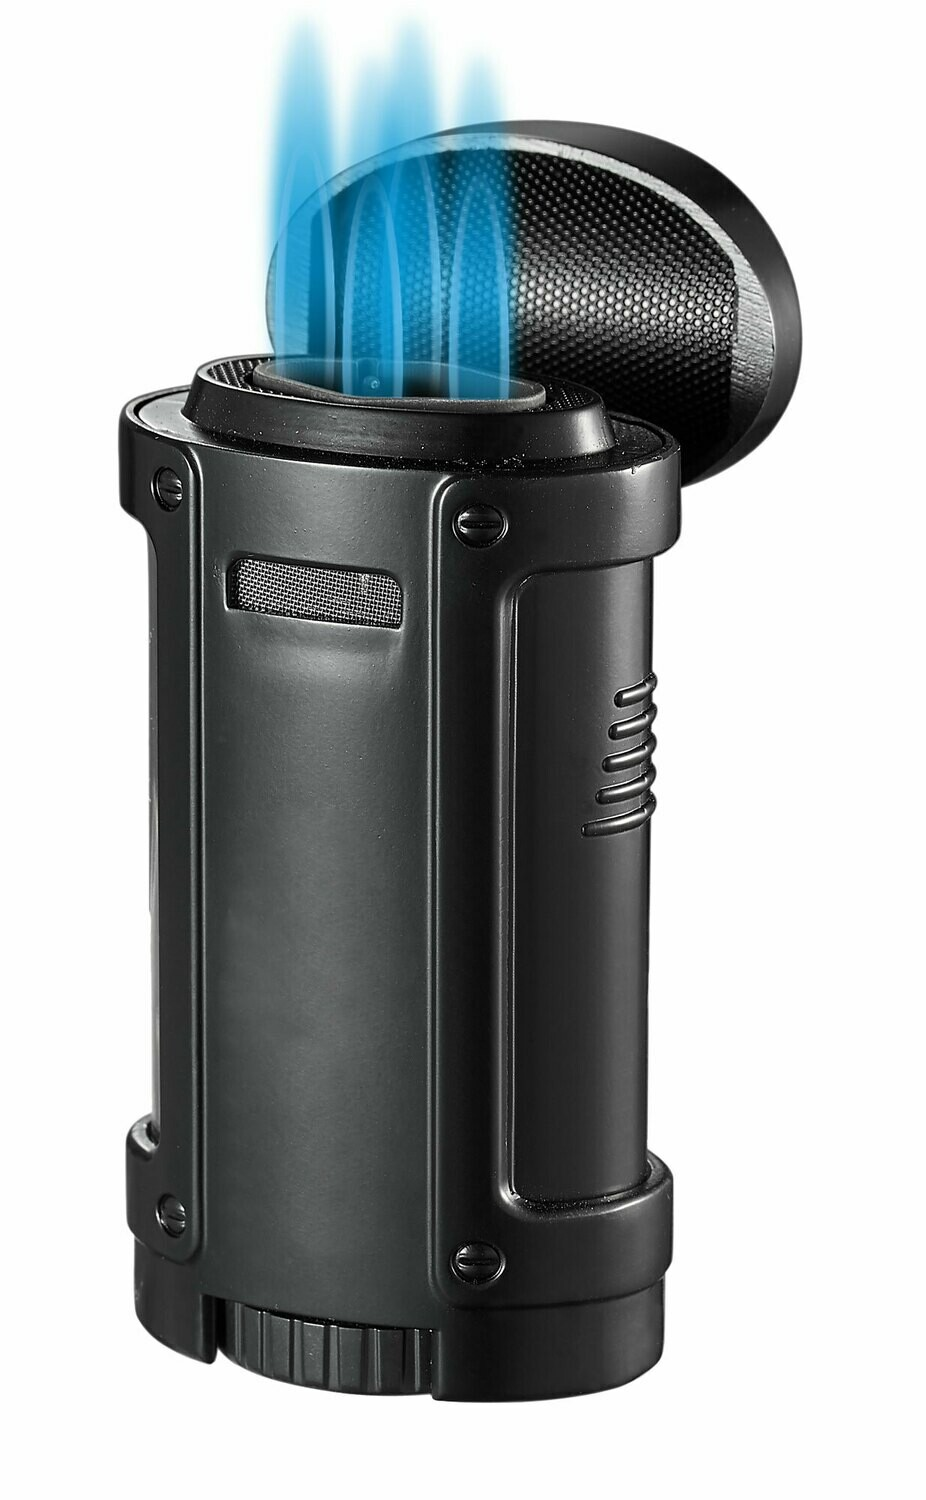 Visol Rhino Quad Flame Lighter With Cigar Rest Black